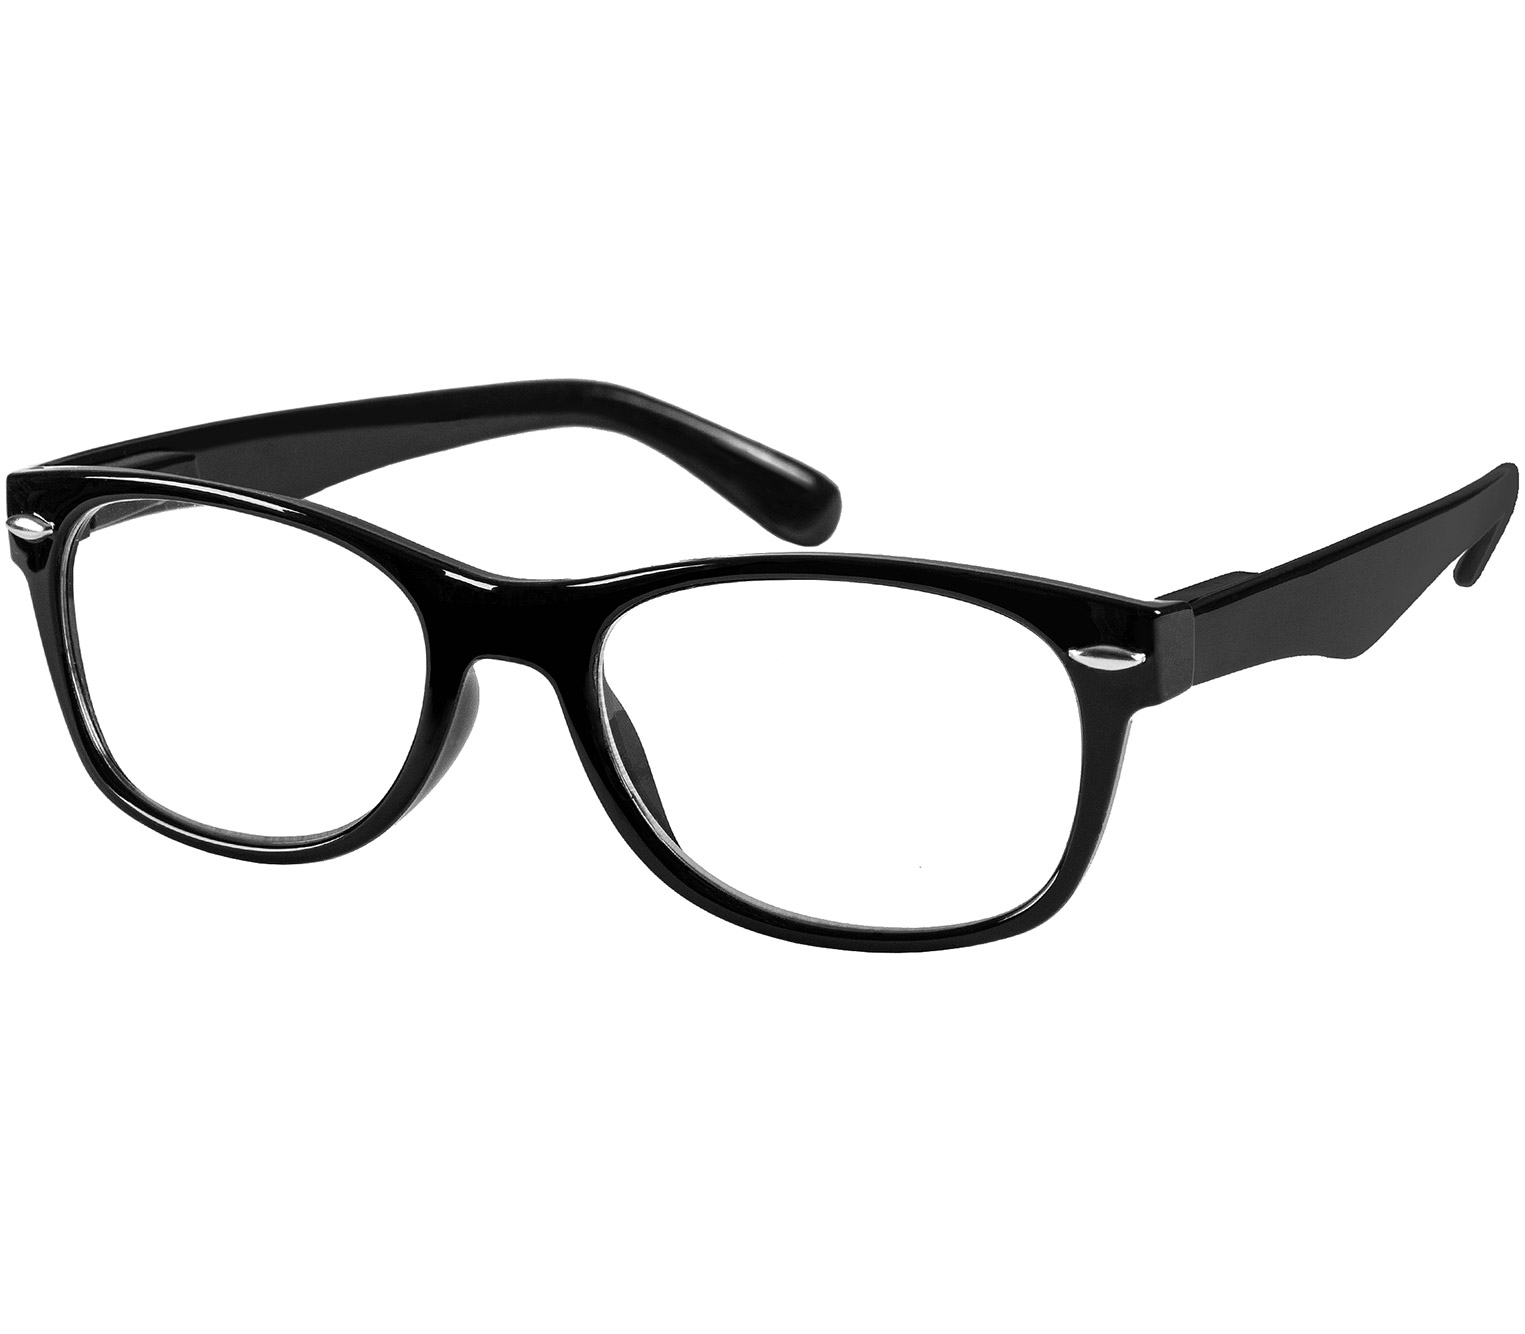 Main Image (Angle) - Harper (Black) Retro Reading Glasses